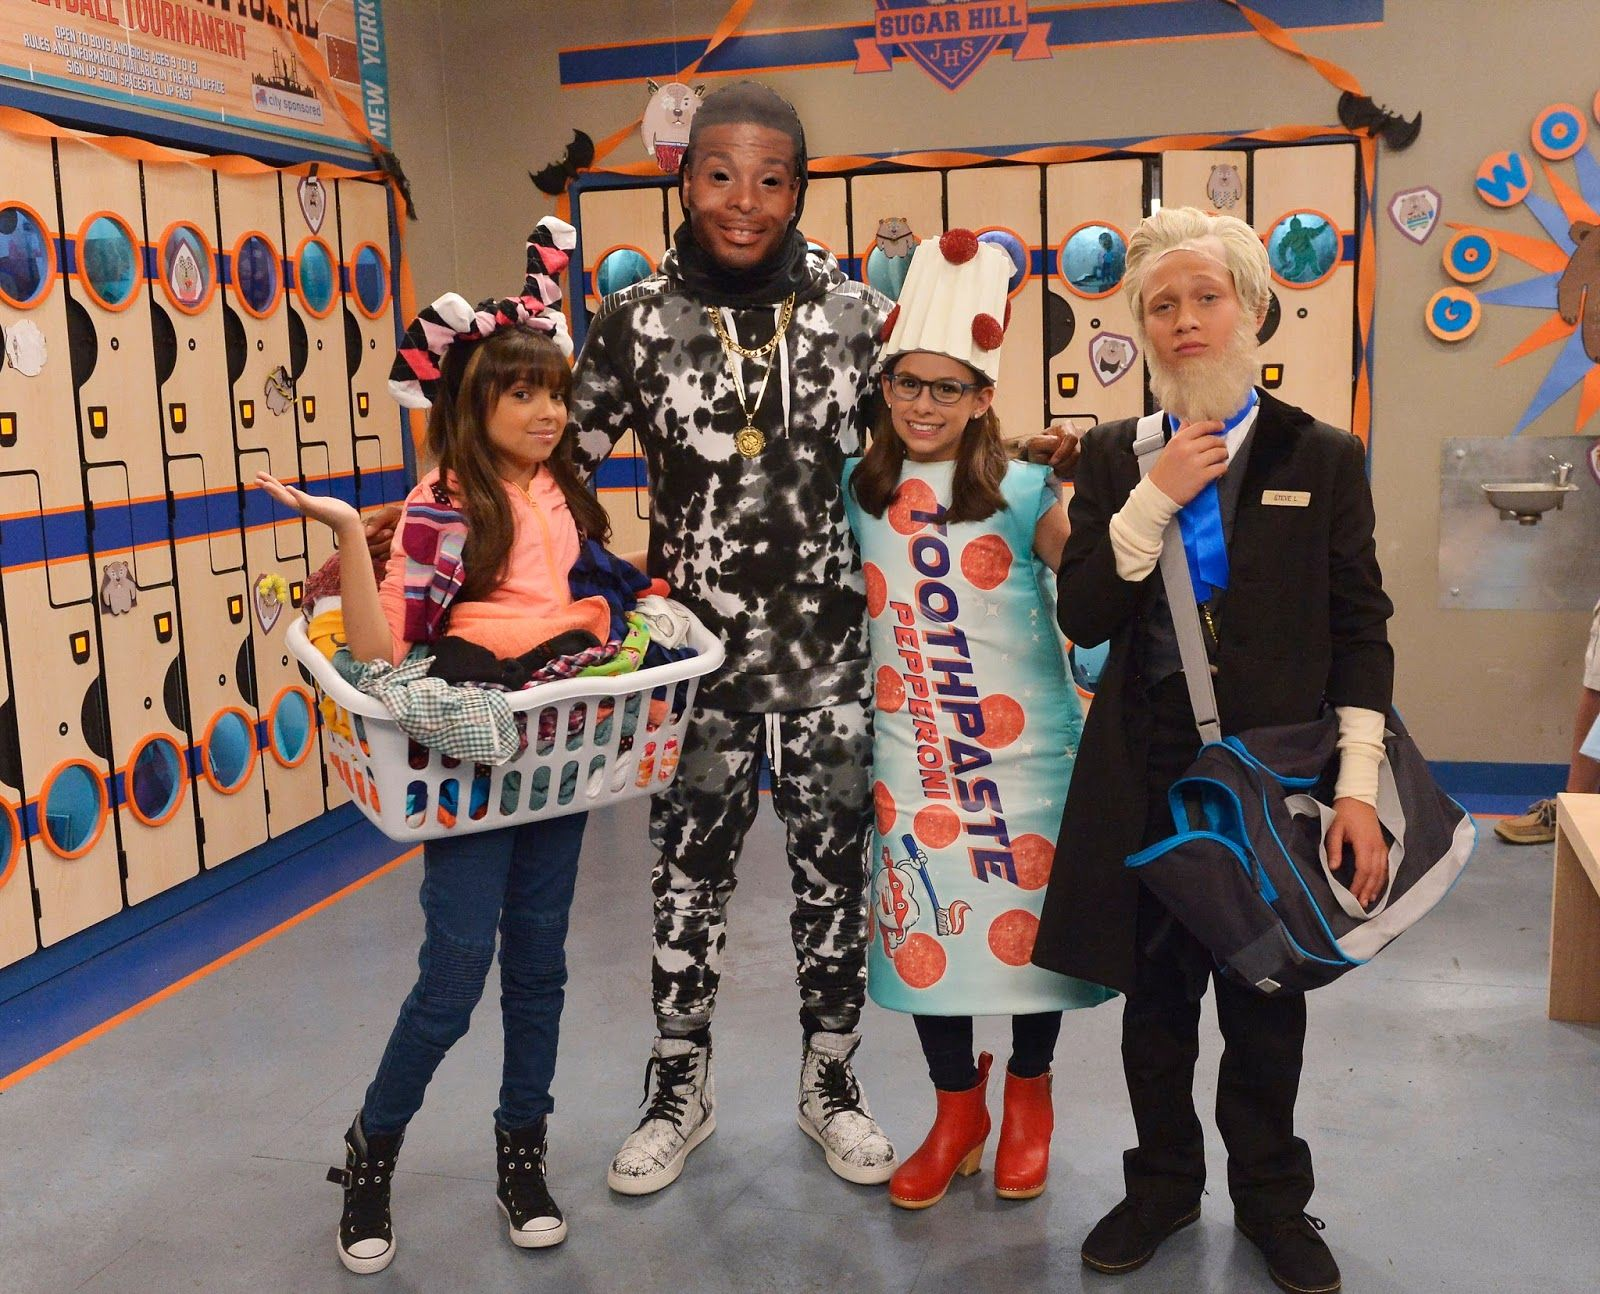 69 best game shakers images on Pinterest Brand new Dawn and